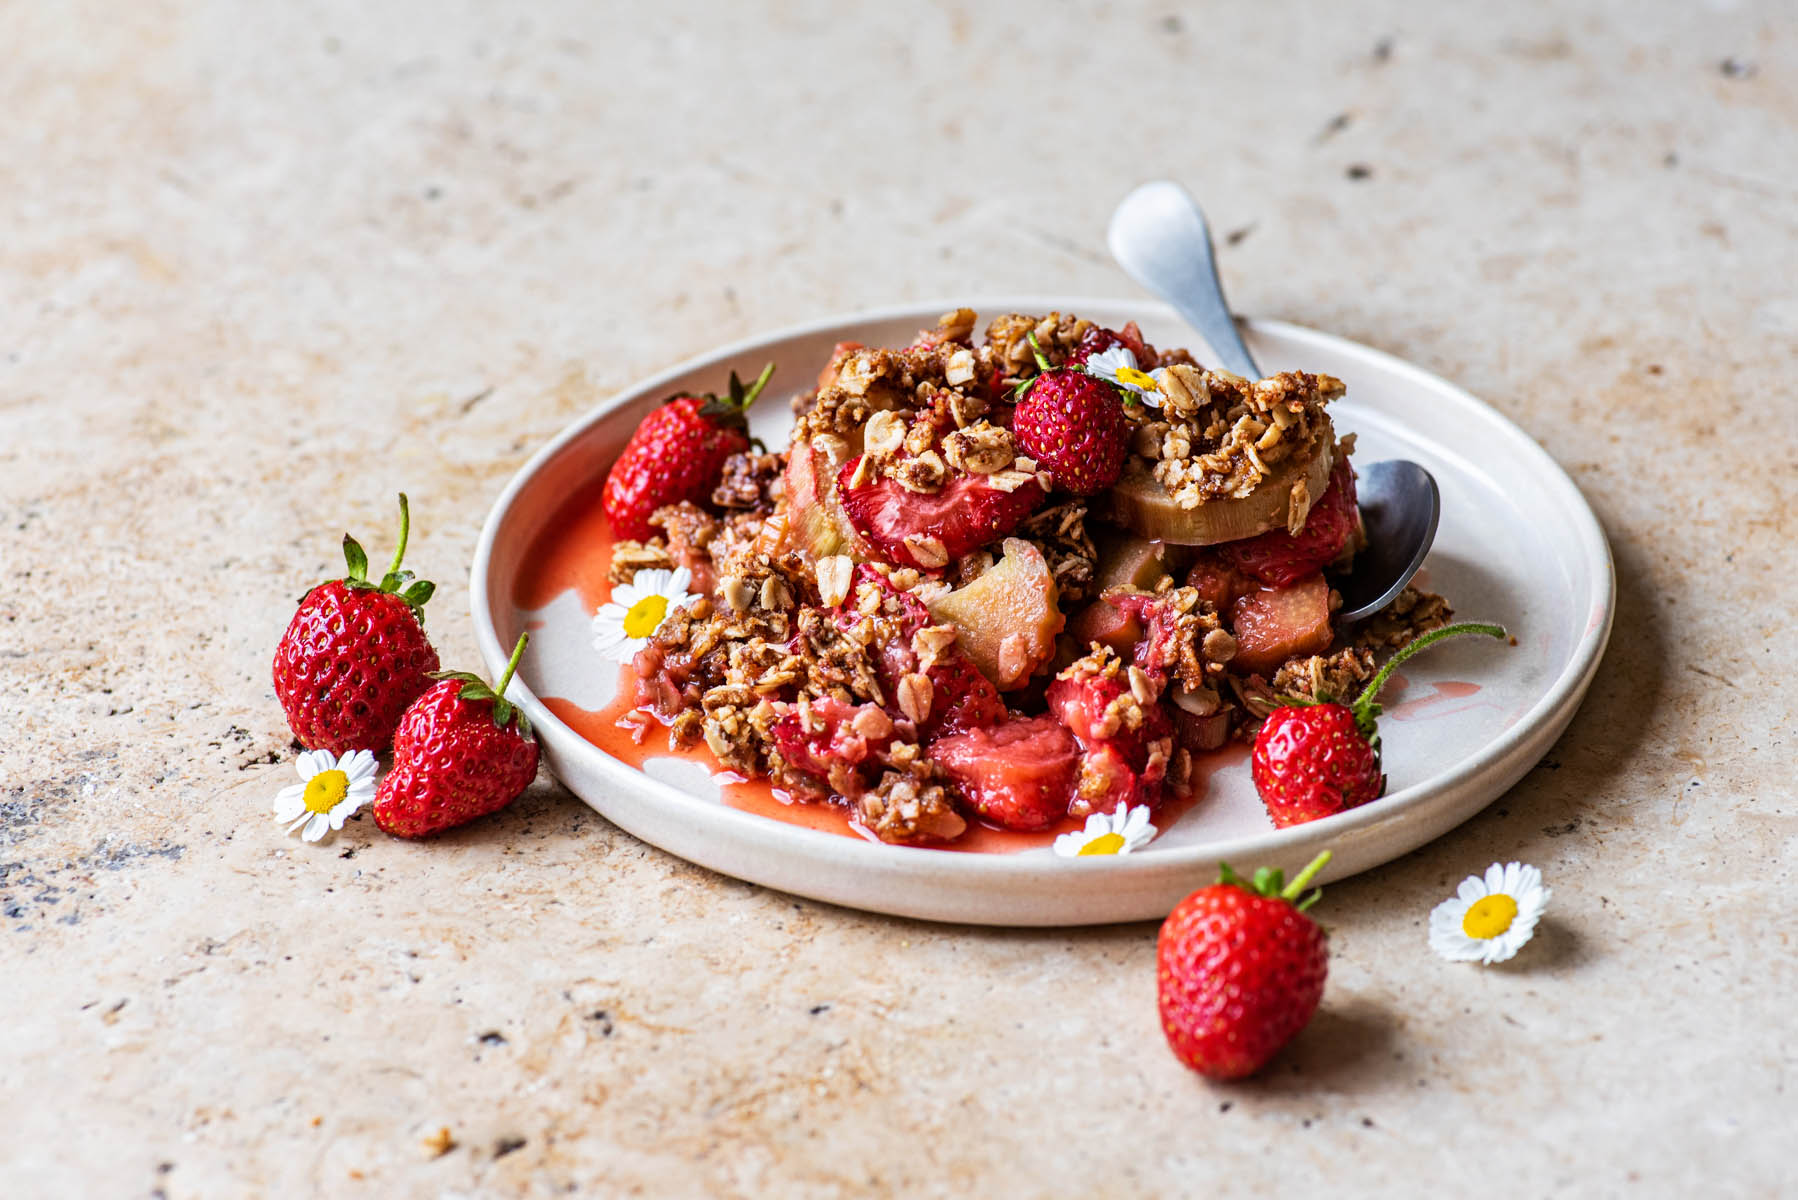 Rhubarb crisp on a small plate with a spoon and fresh berries.